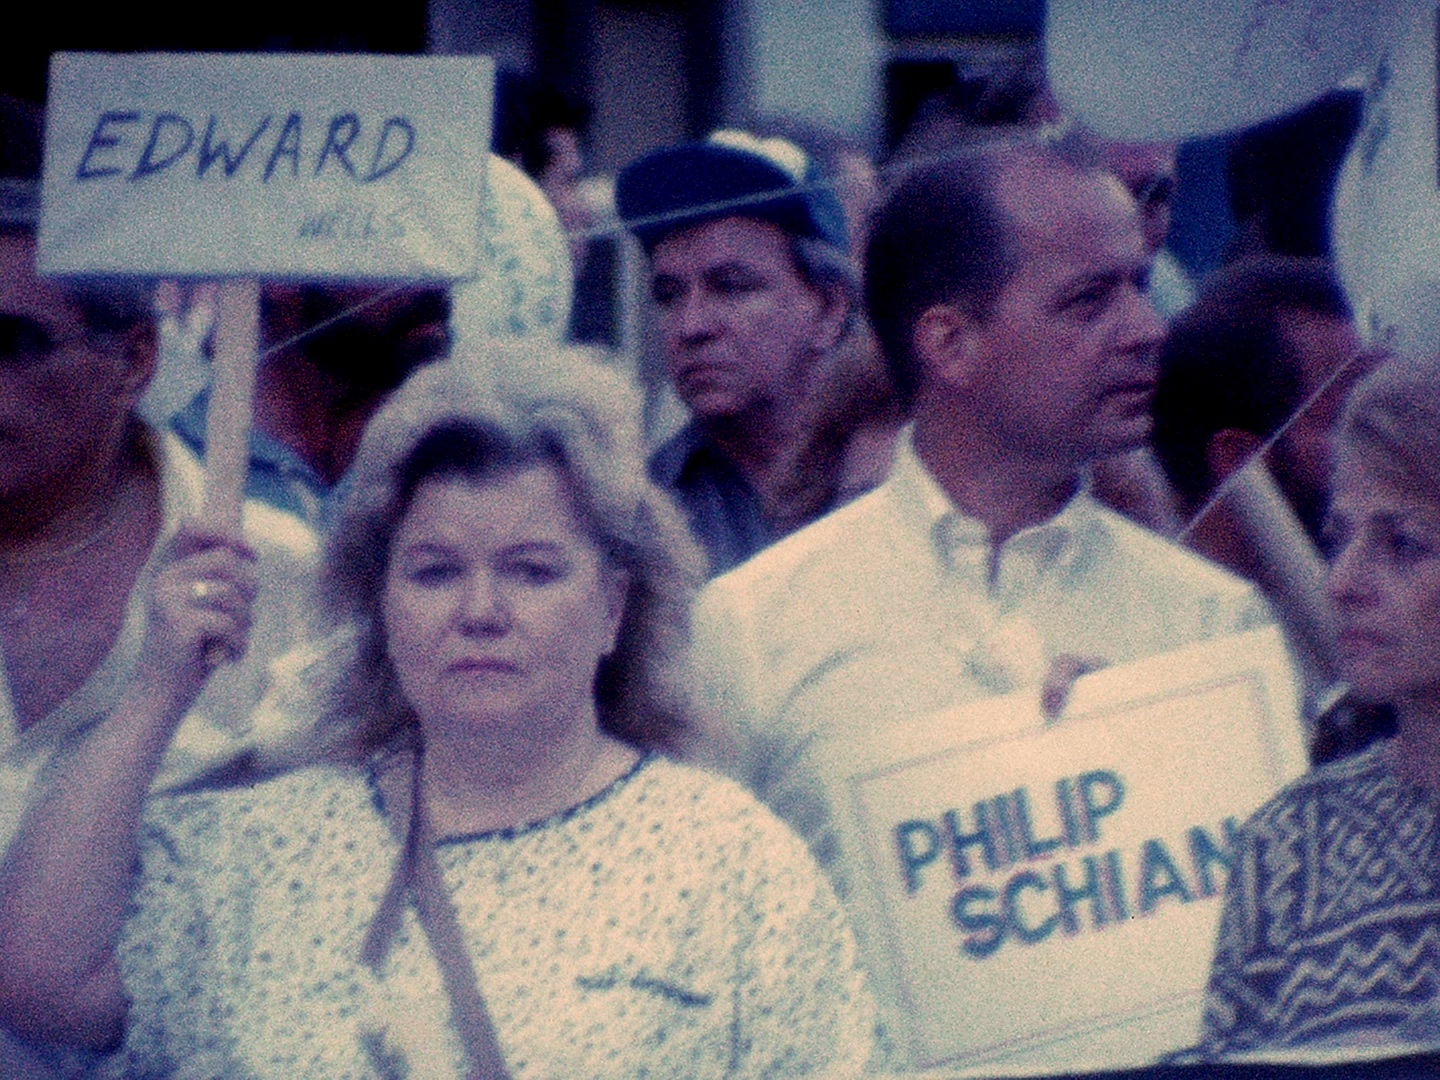 AIDS Candlelight Vigil, Christopher Street, New York City, May 1987